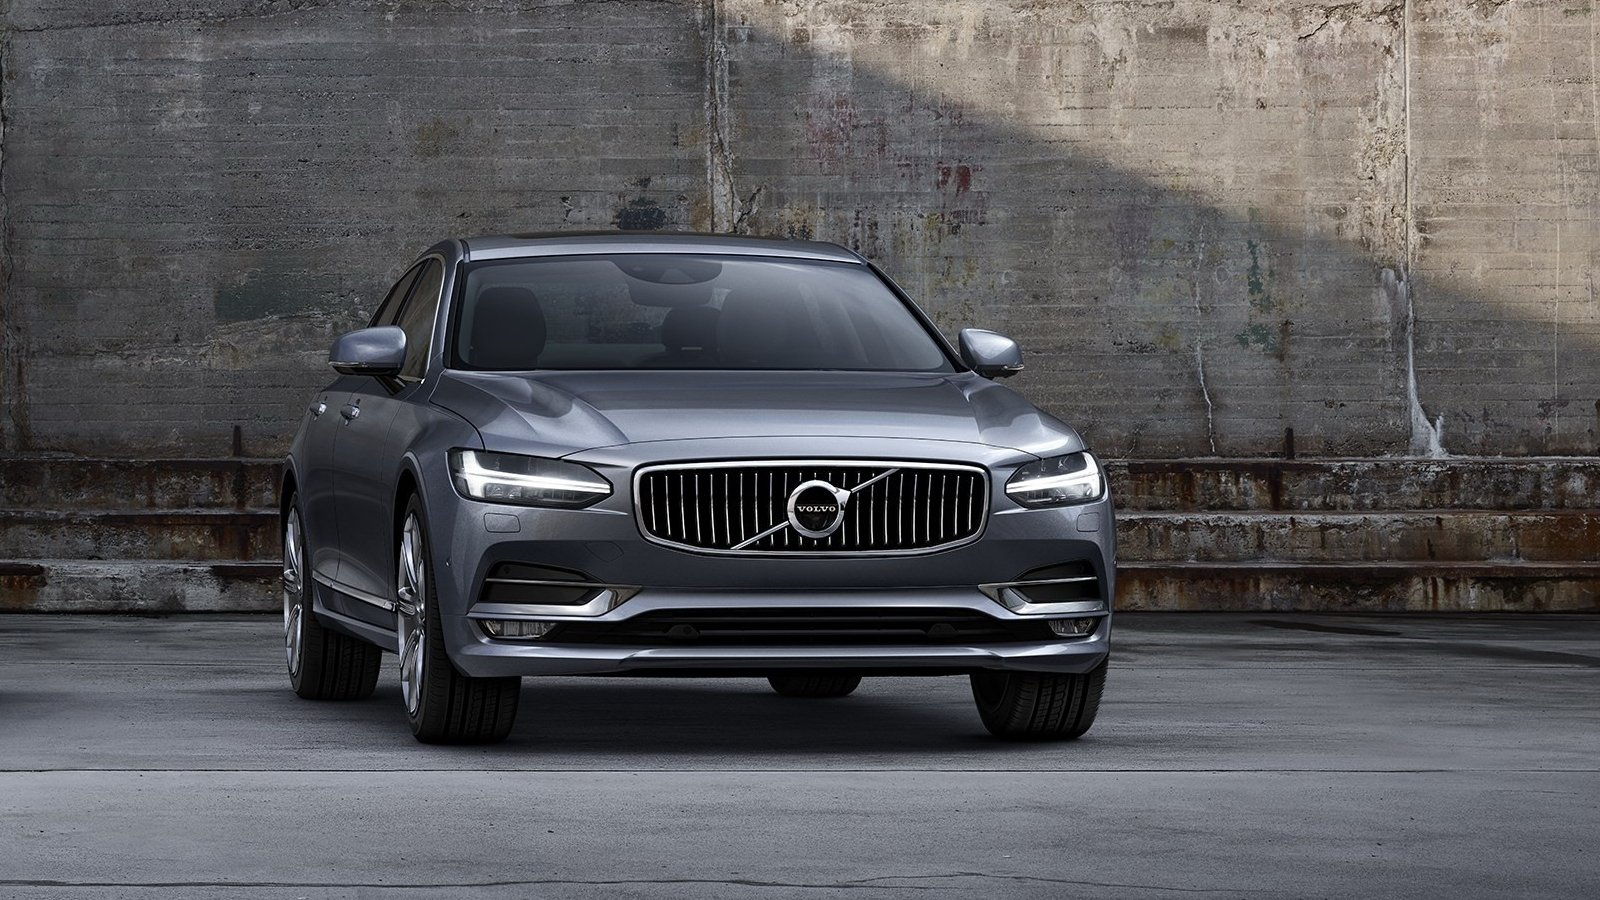 2016 Volvo S90 And V90 With Polestar Performance